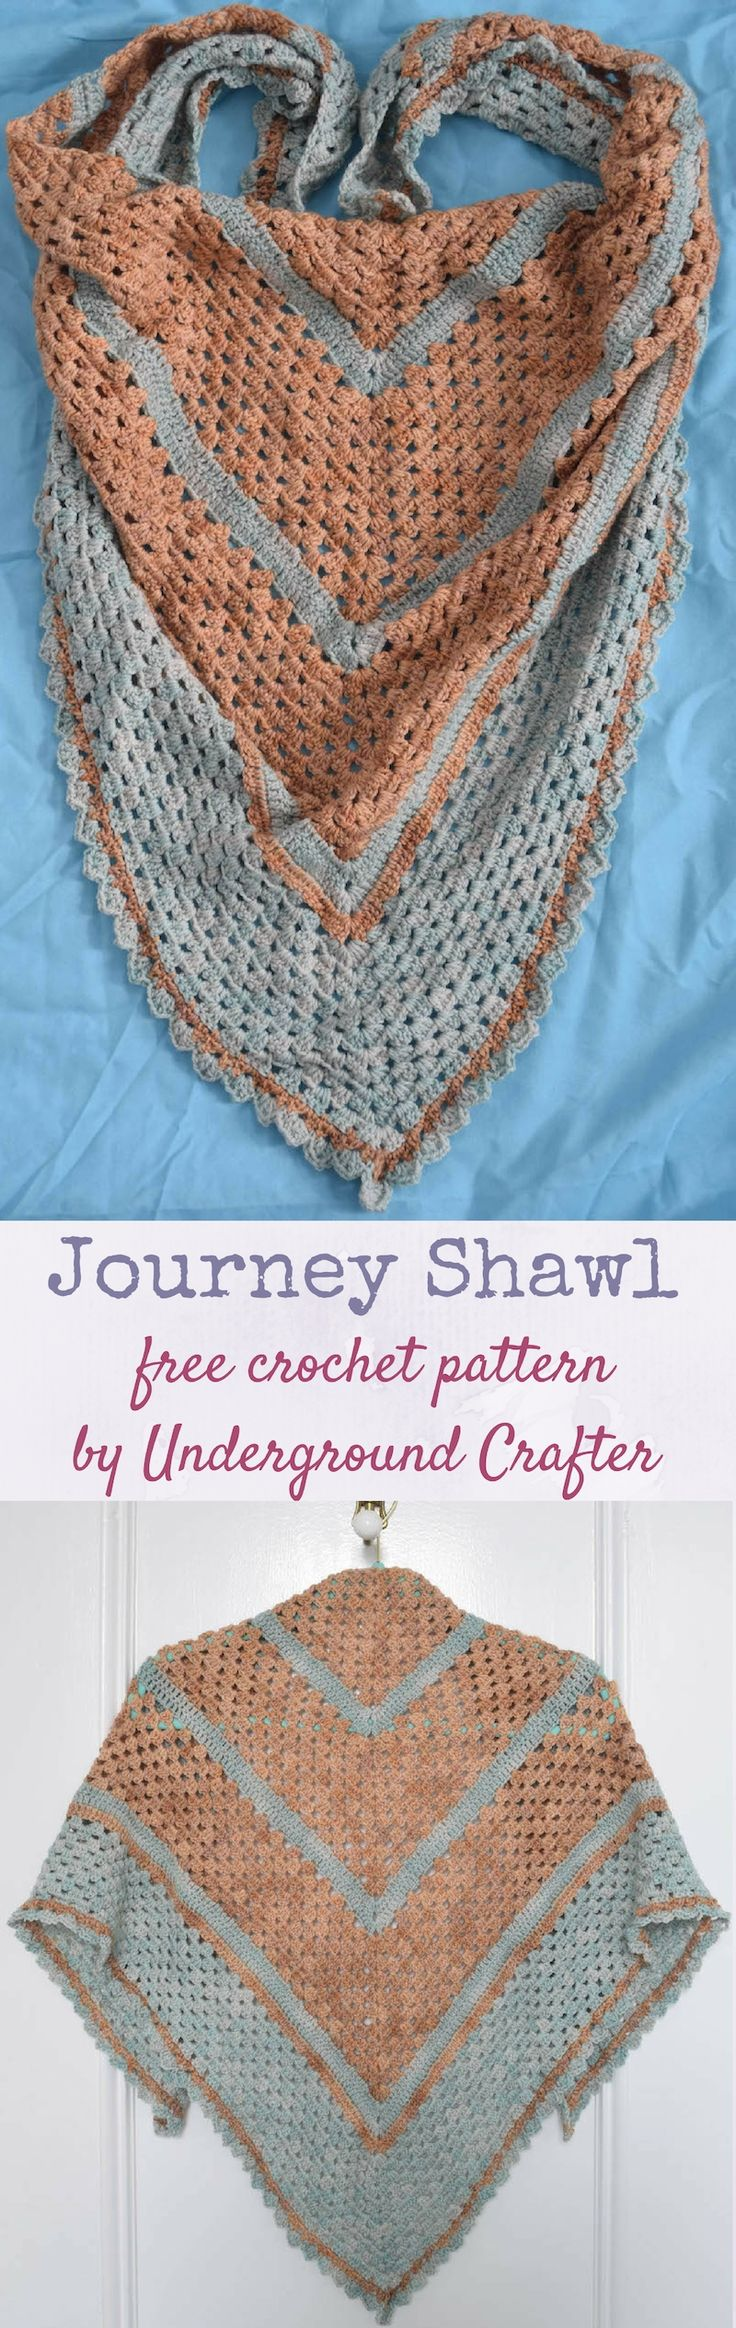 Free crochet pattern: Journey Shawl in Sweet Georgia Tough Love Sock yarn by Underground Crafter   Take a peaceful journey with this beginner-friendly triangular shawl, which is also lightweight enough to wear as a triangular scarf.